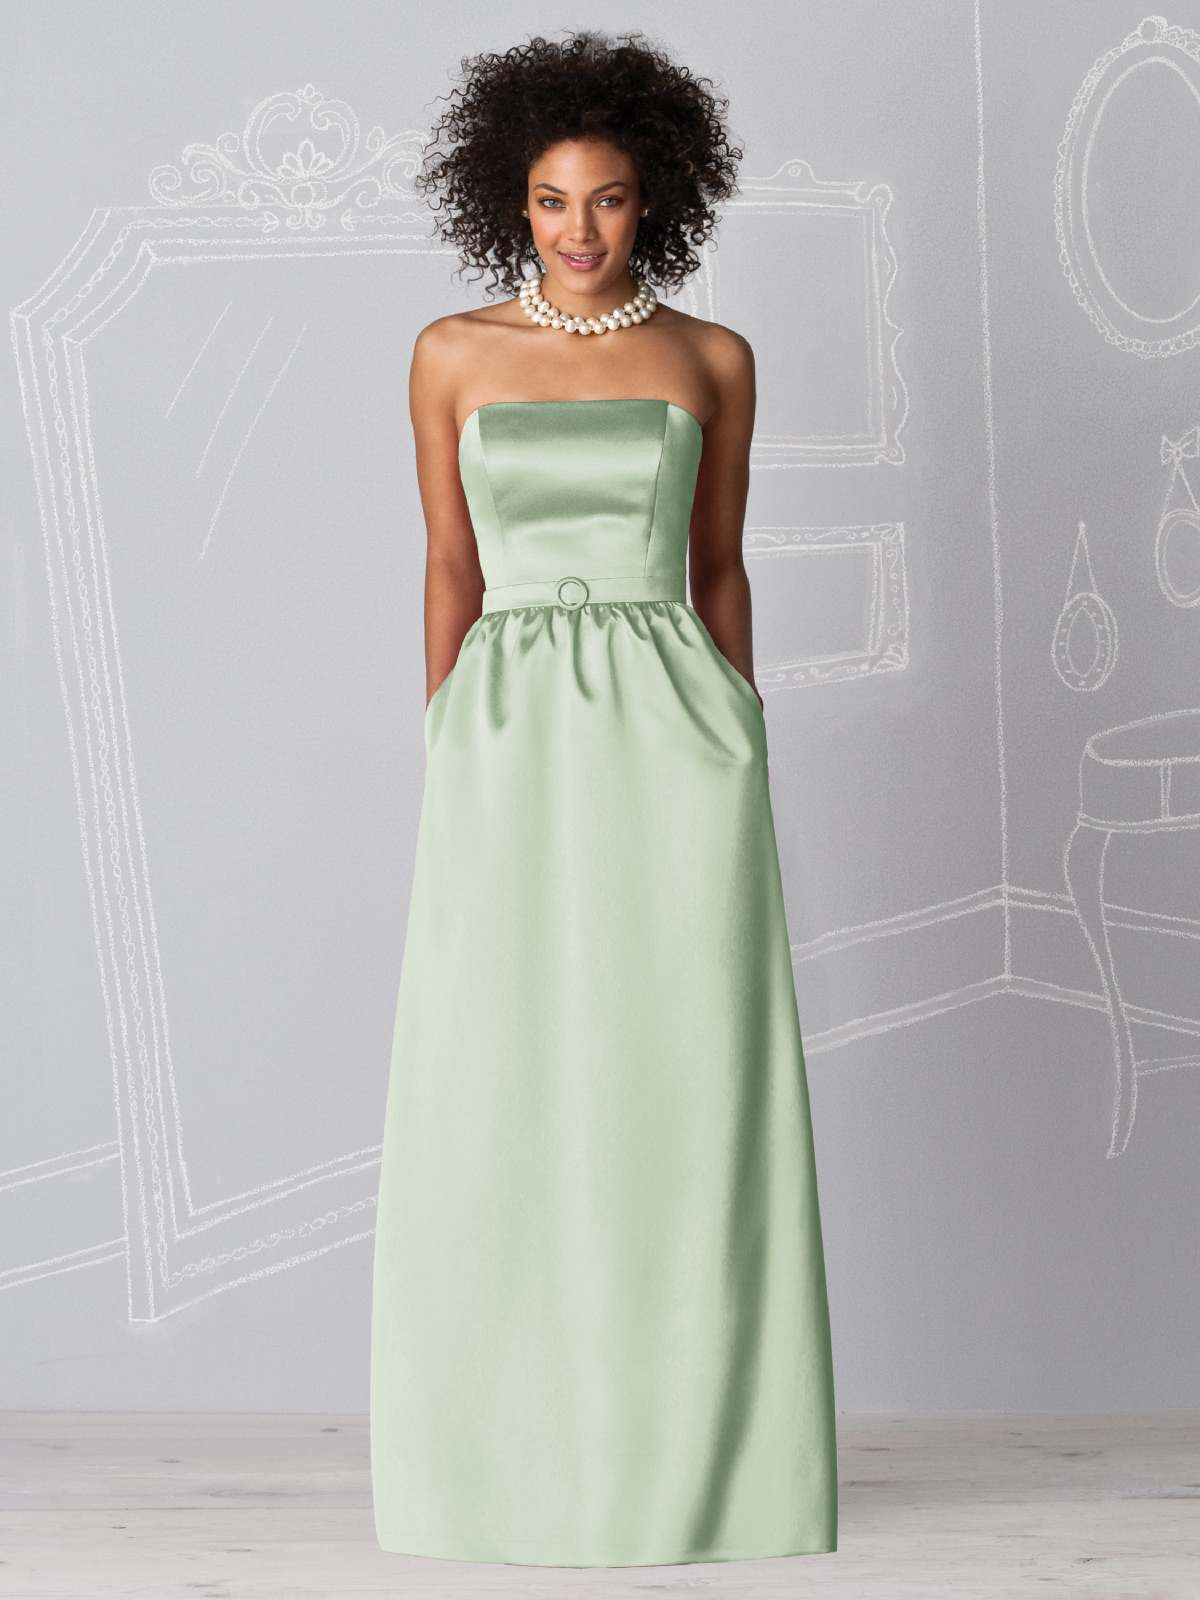 Pale Sage Column Strapless Zipper Floor Length Satin Prom Dresses With Belt